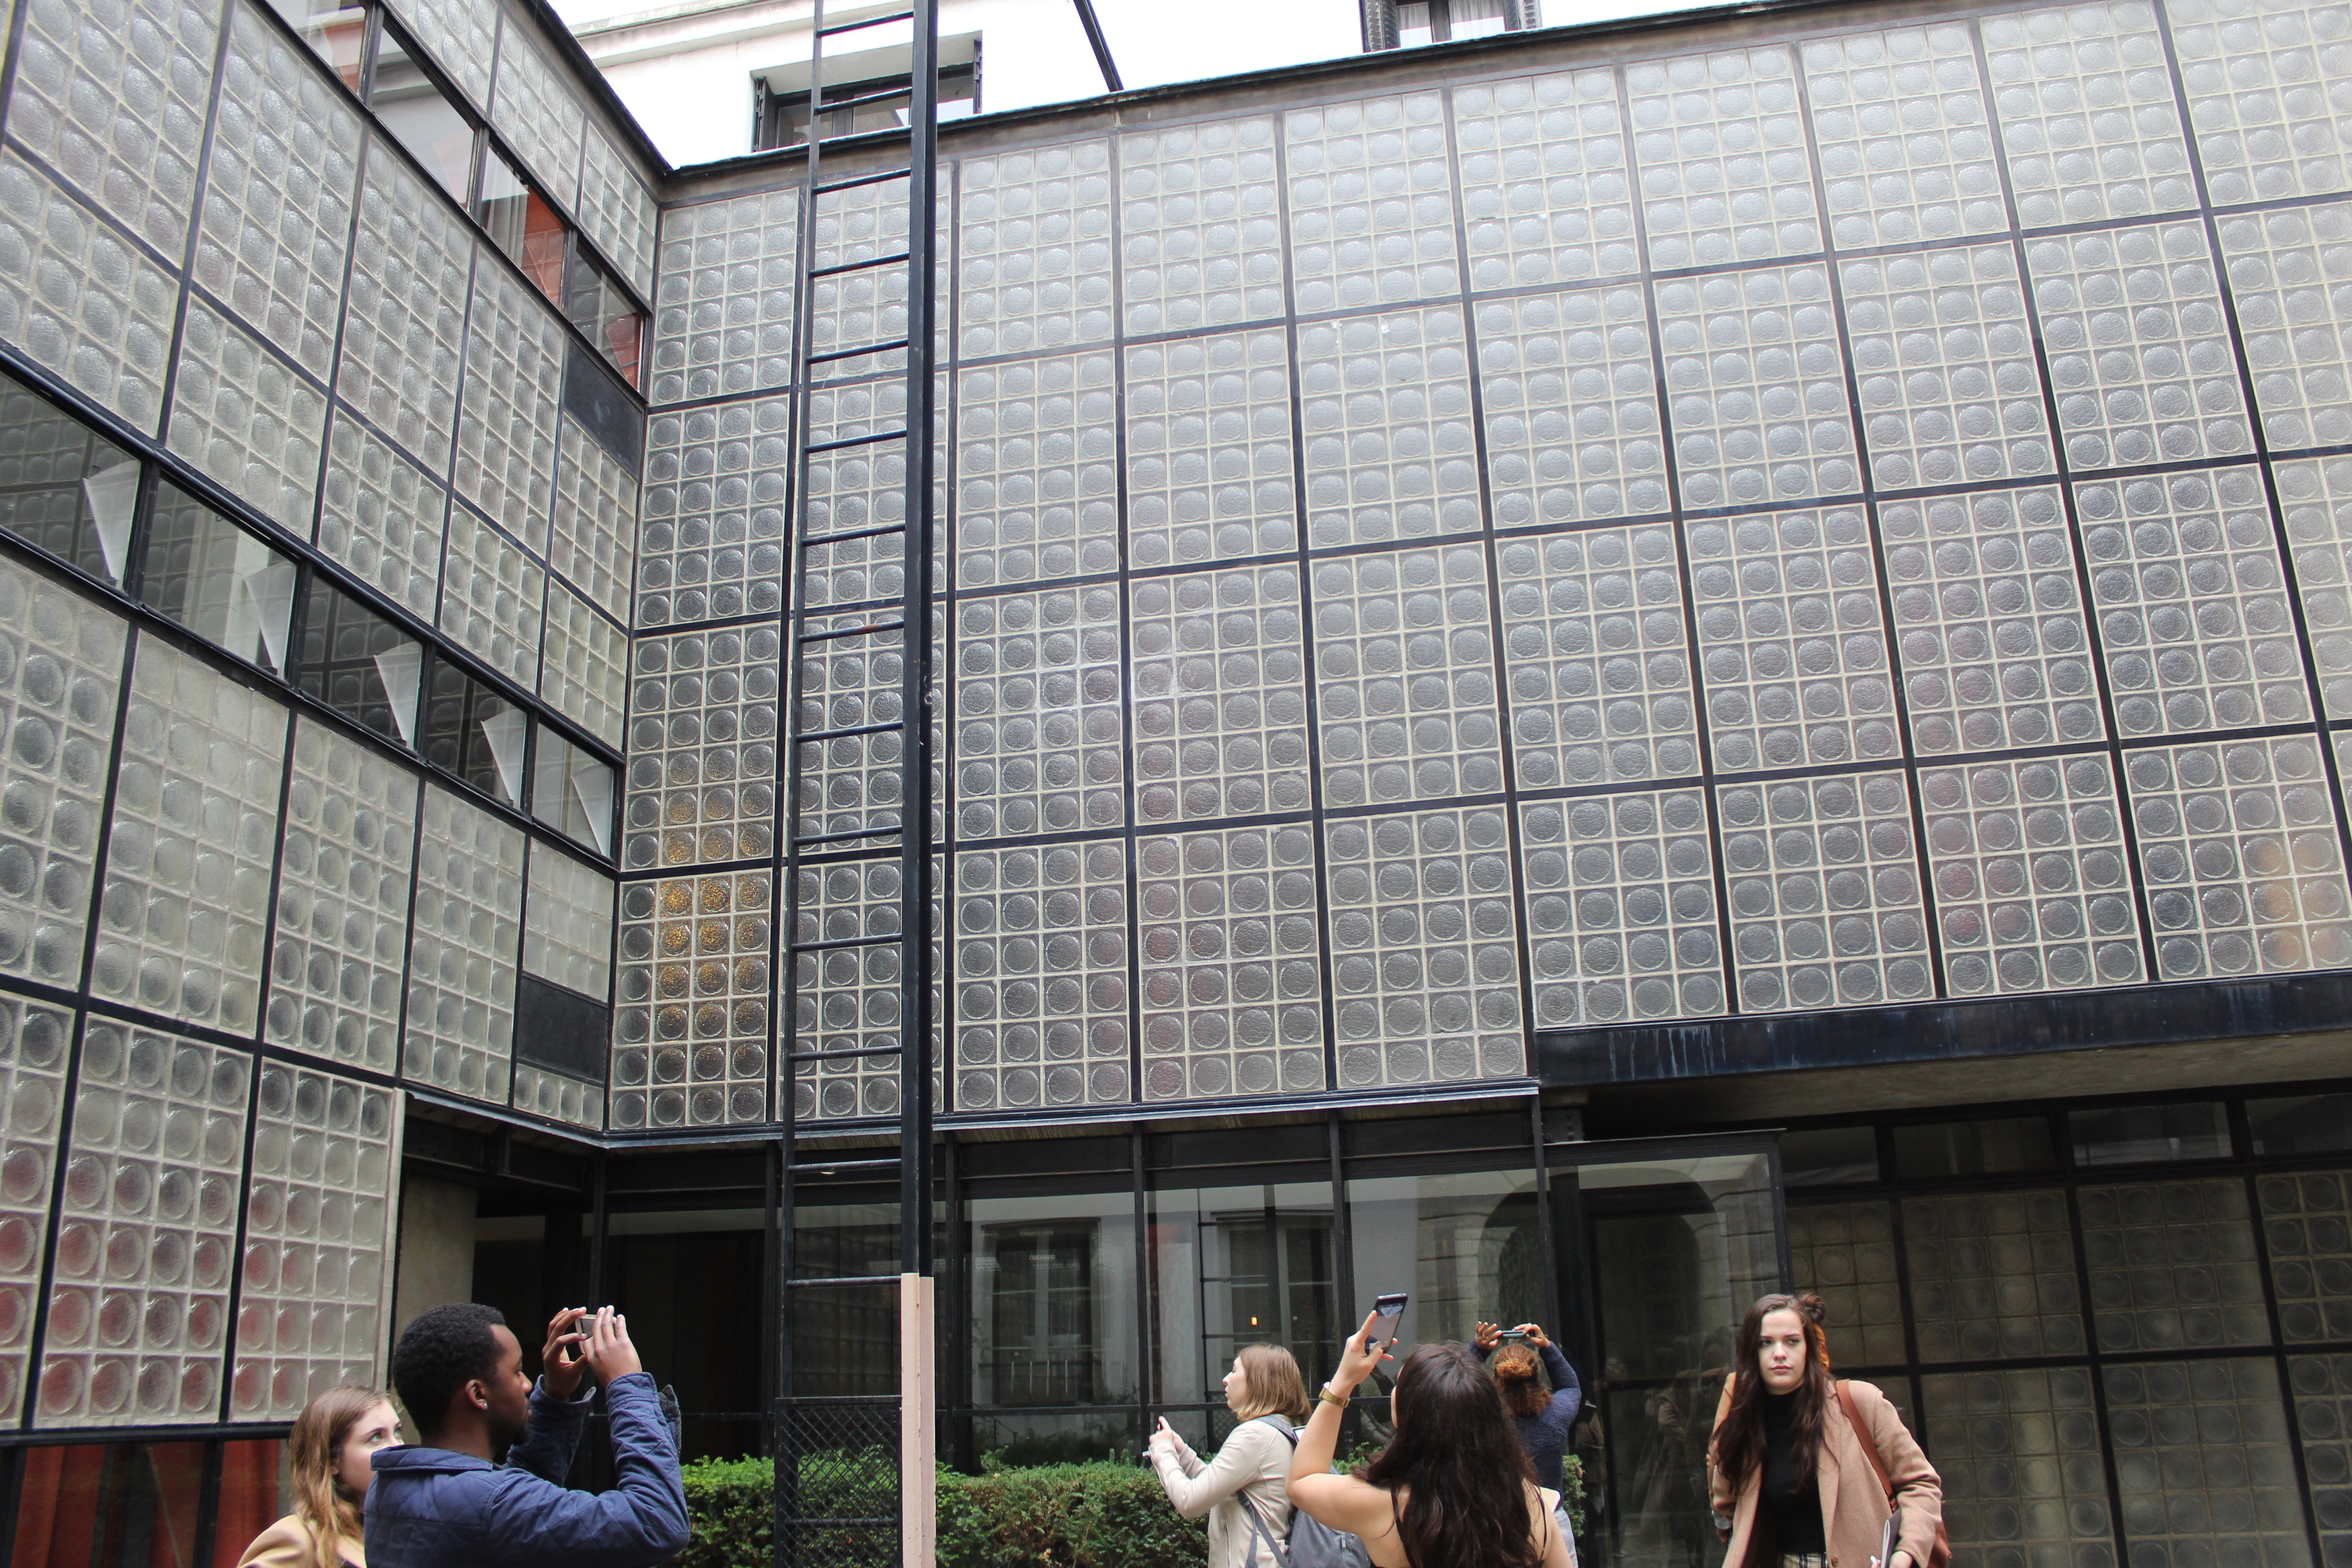 People standing and taking pictures in front of a building with black steel and many square windows.